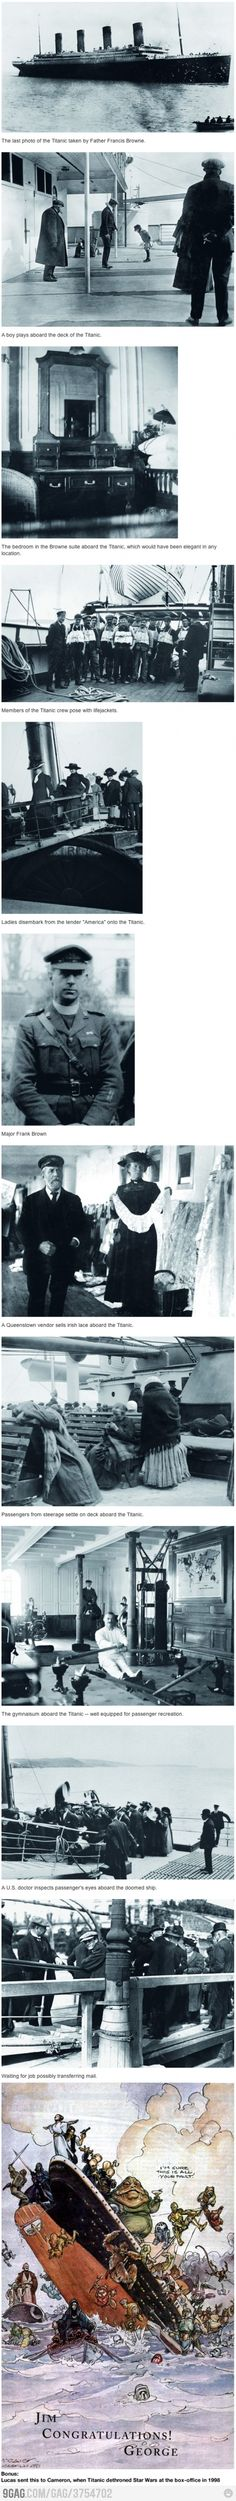 Some Pictures Of The Titanic You've Never Seen.  I've seen them because I'm a HUGE STINKIN TITANIC FAN!!!!